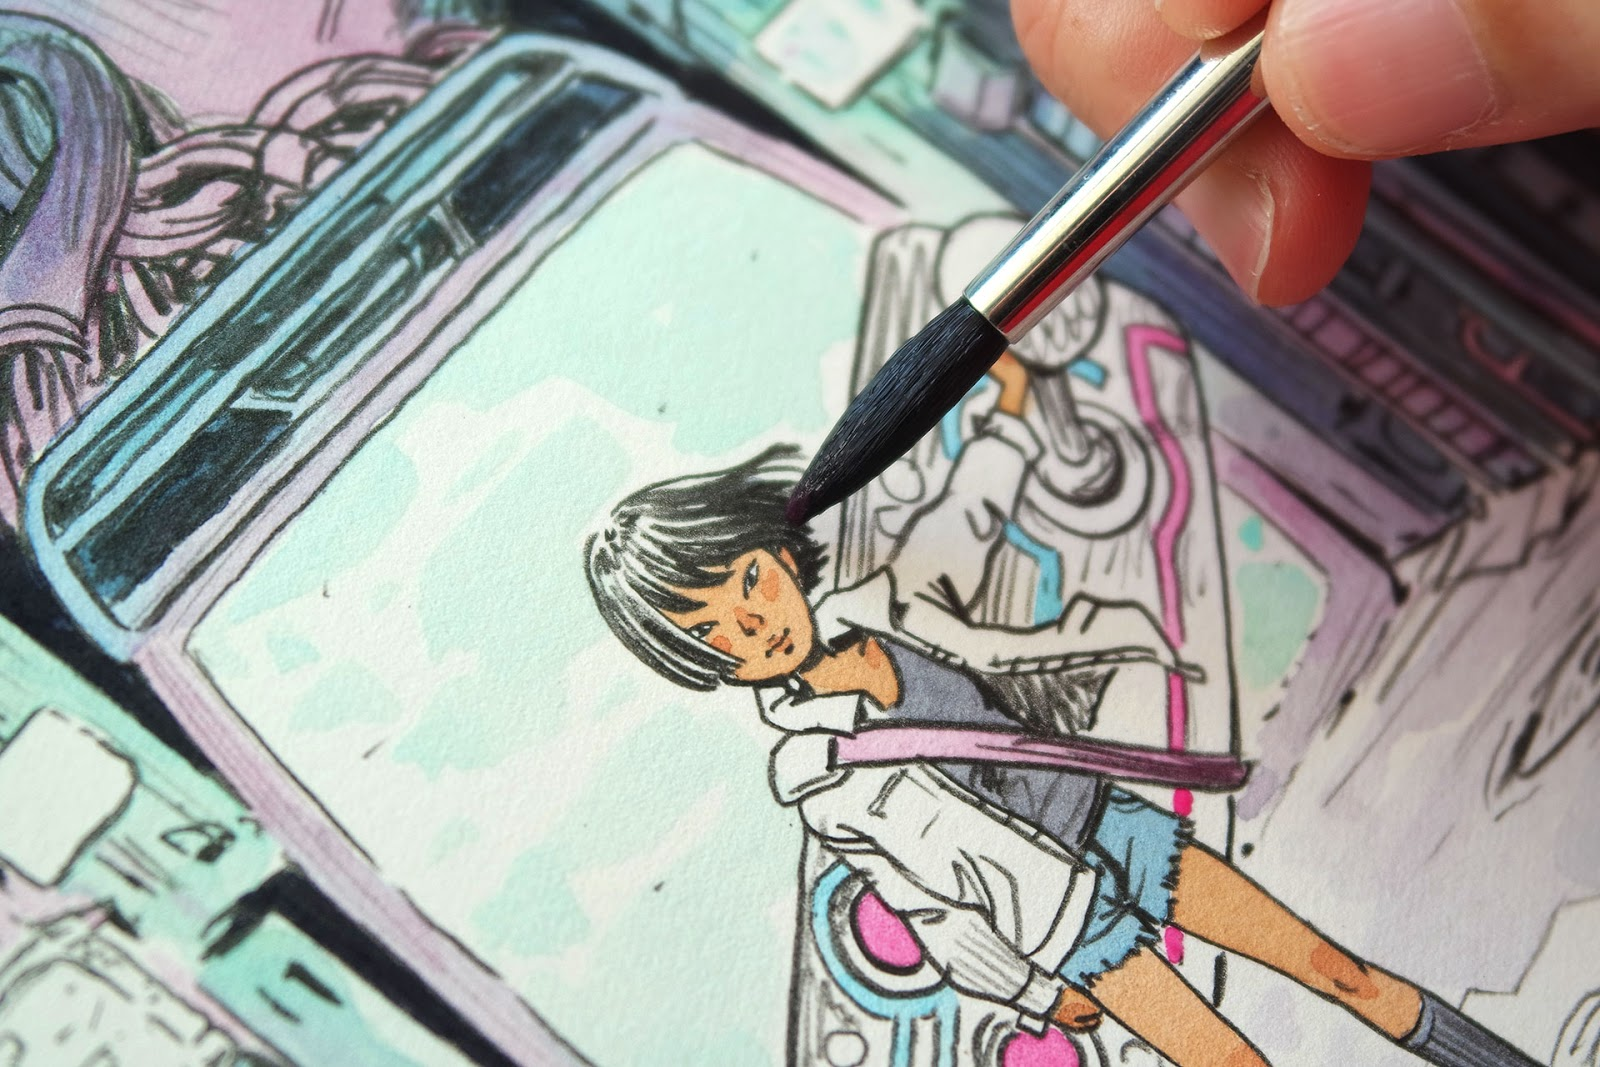 Detail from the illustration being coloured